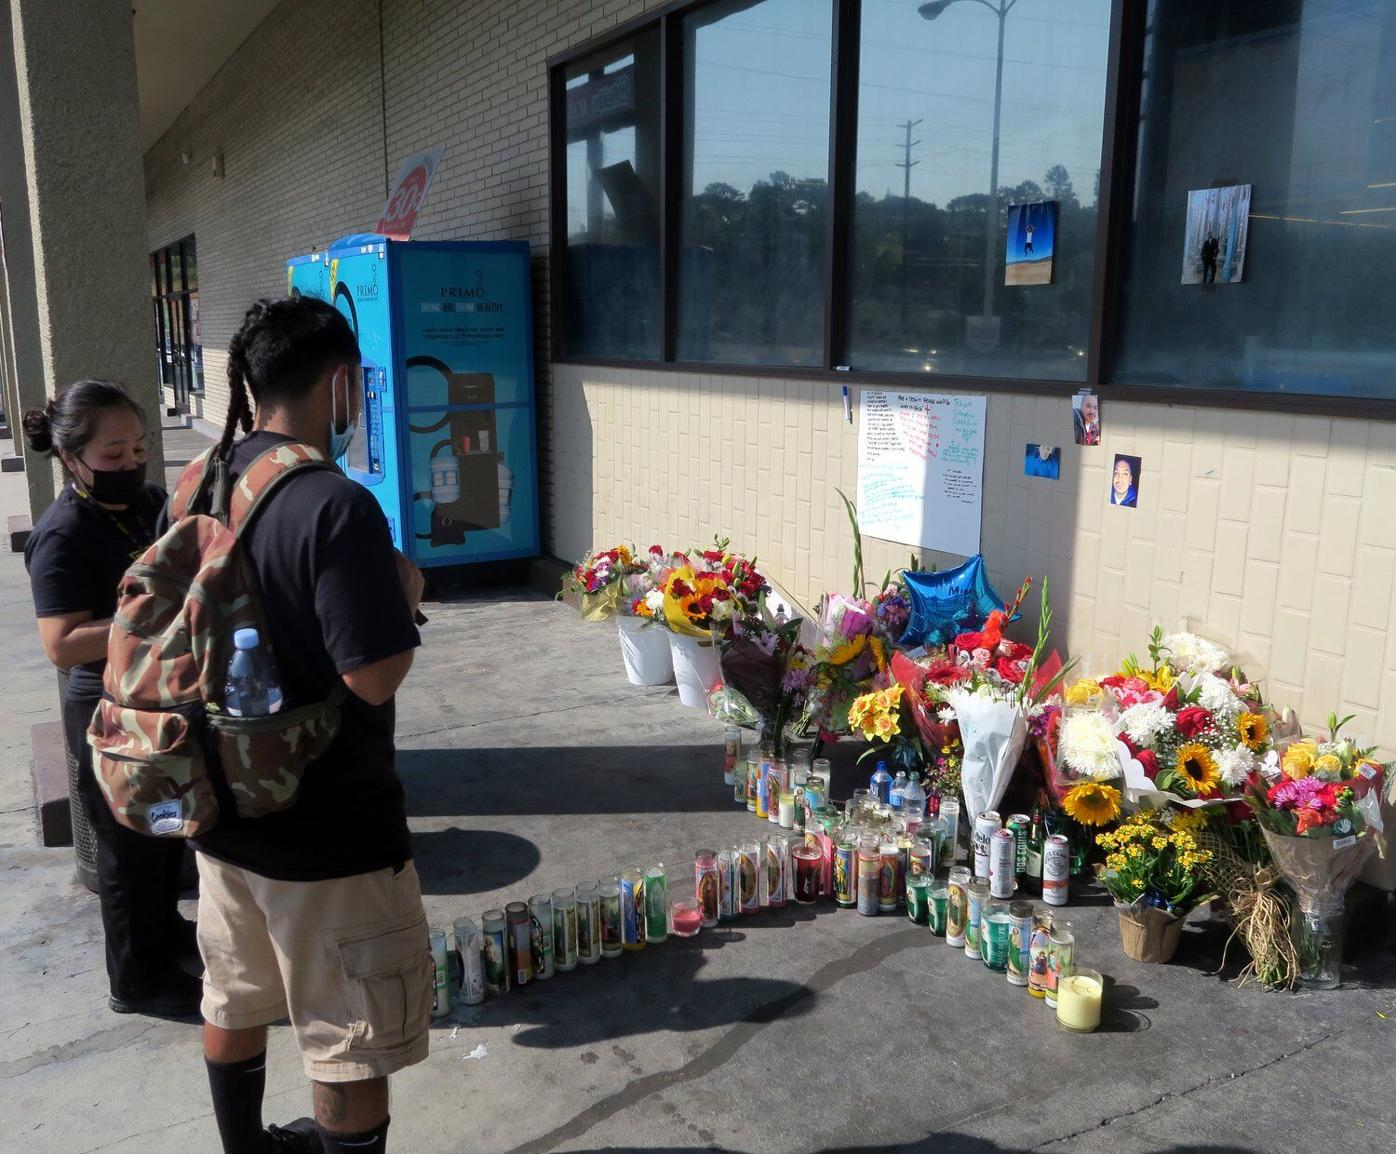 Rite Aid shooting memorial flowers and candles